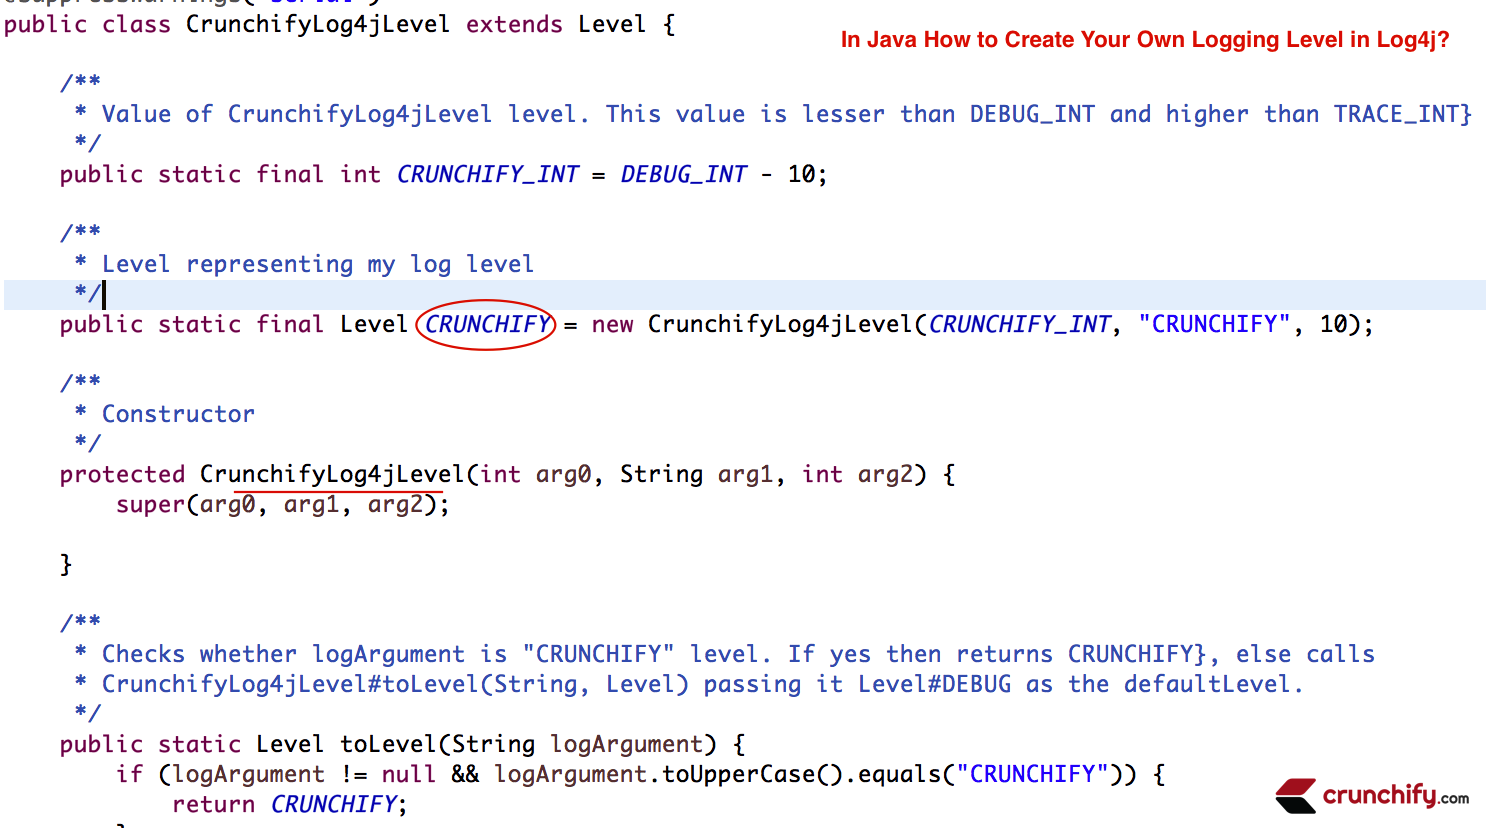 In java how to create your own logging level using log4j how to create your own logging level in log4j configuring log4j baditri Image collections